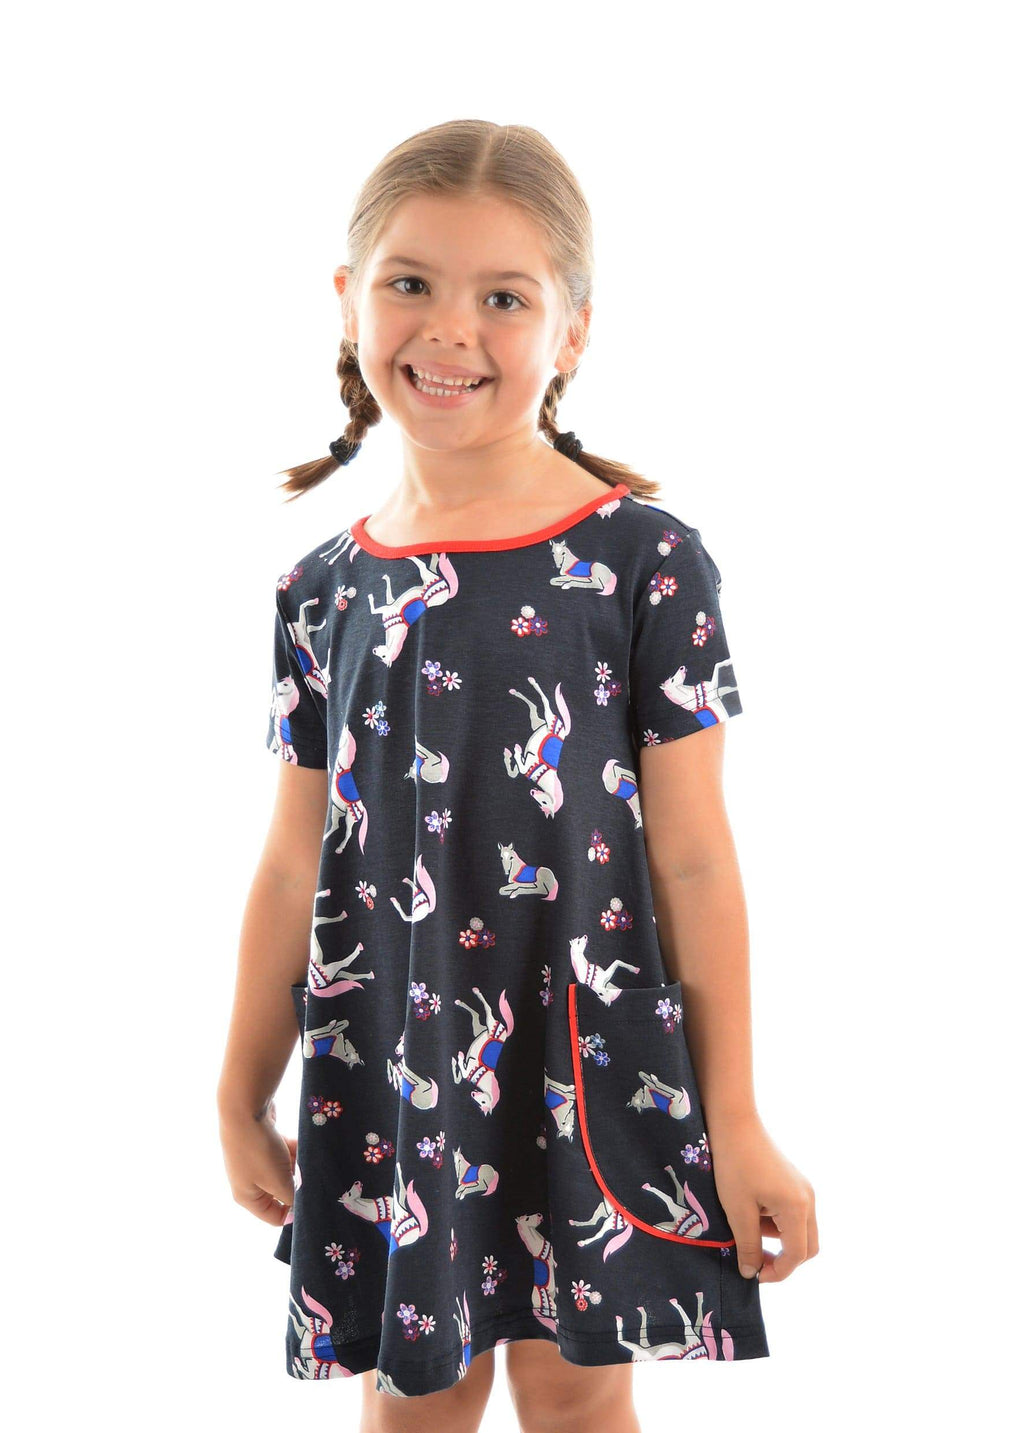 Gympie Saddleworld & Country Clothing DRESS 14 Thomas Cook Girls Horse Print Dress